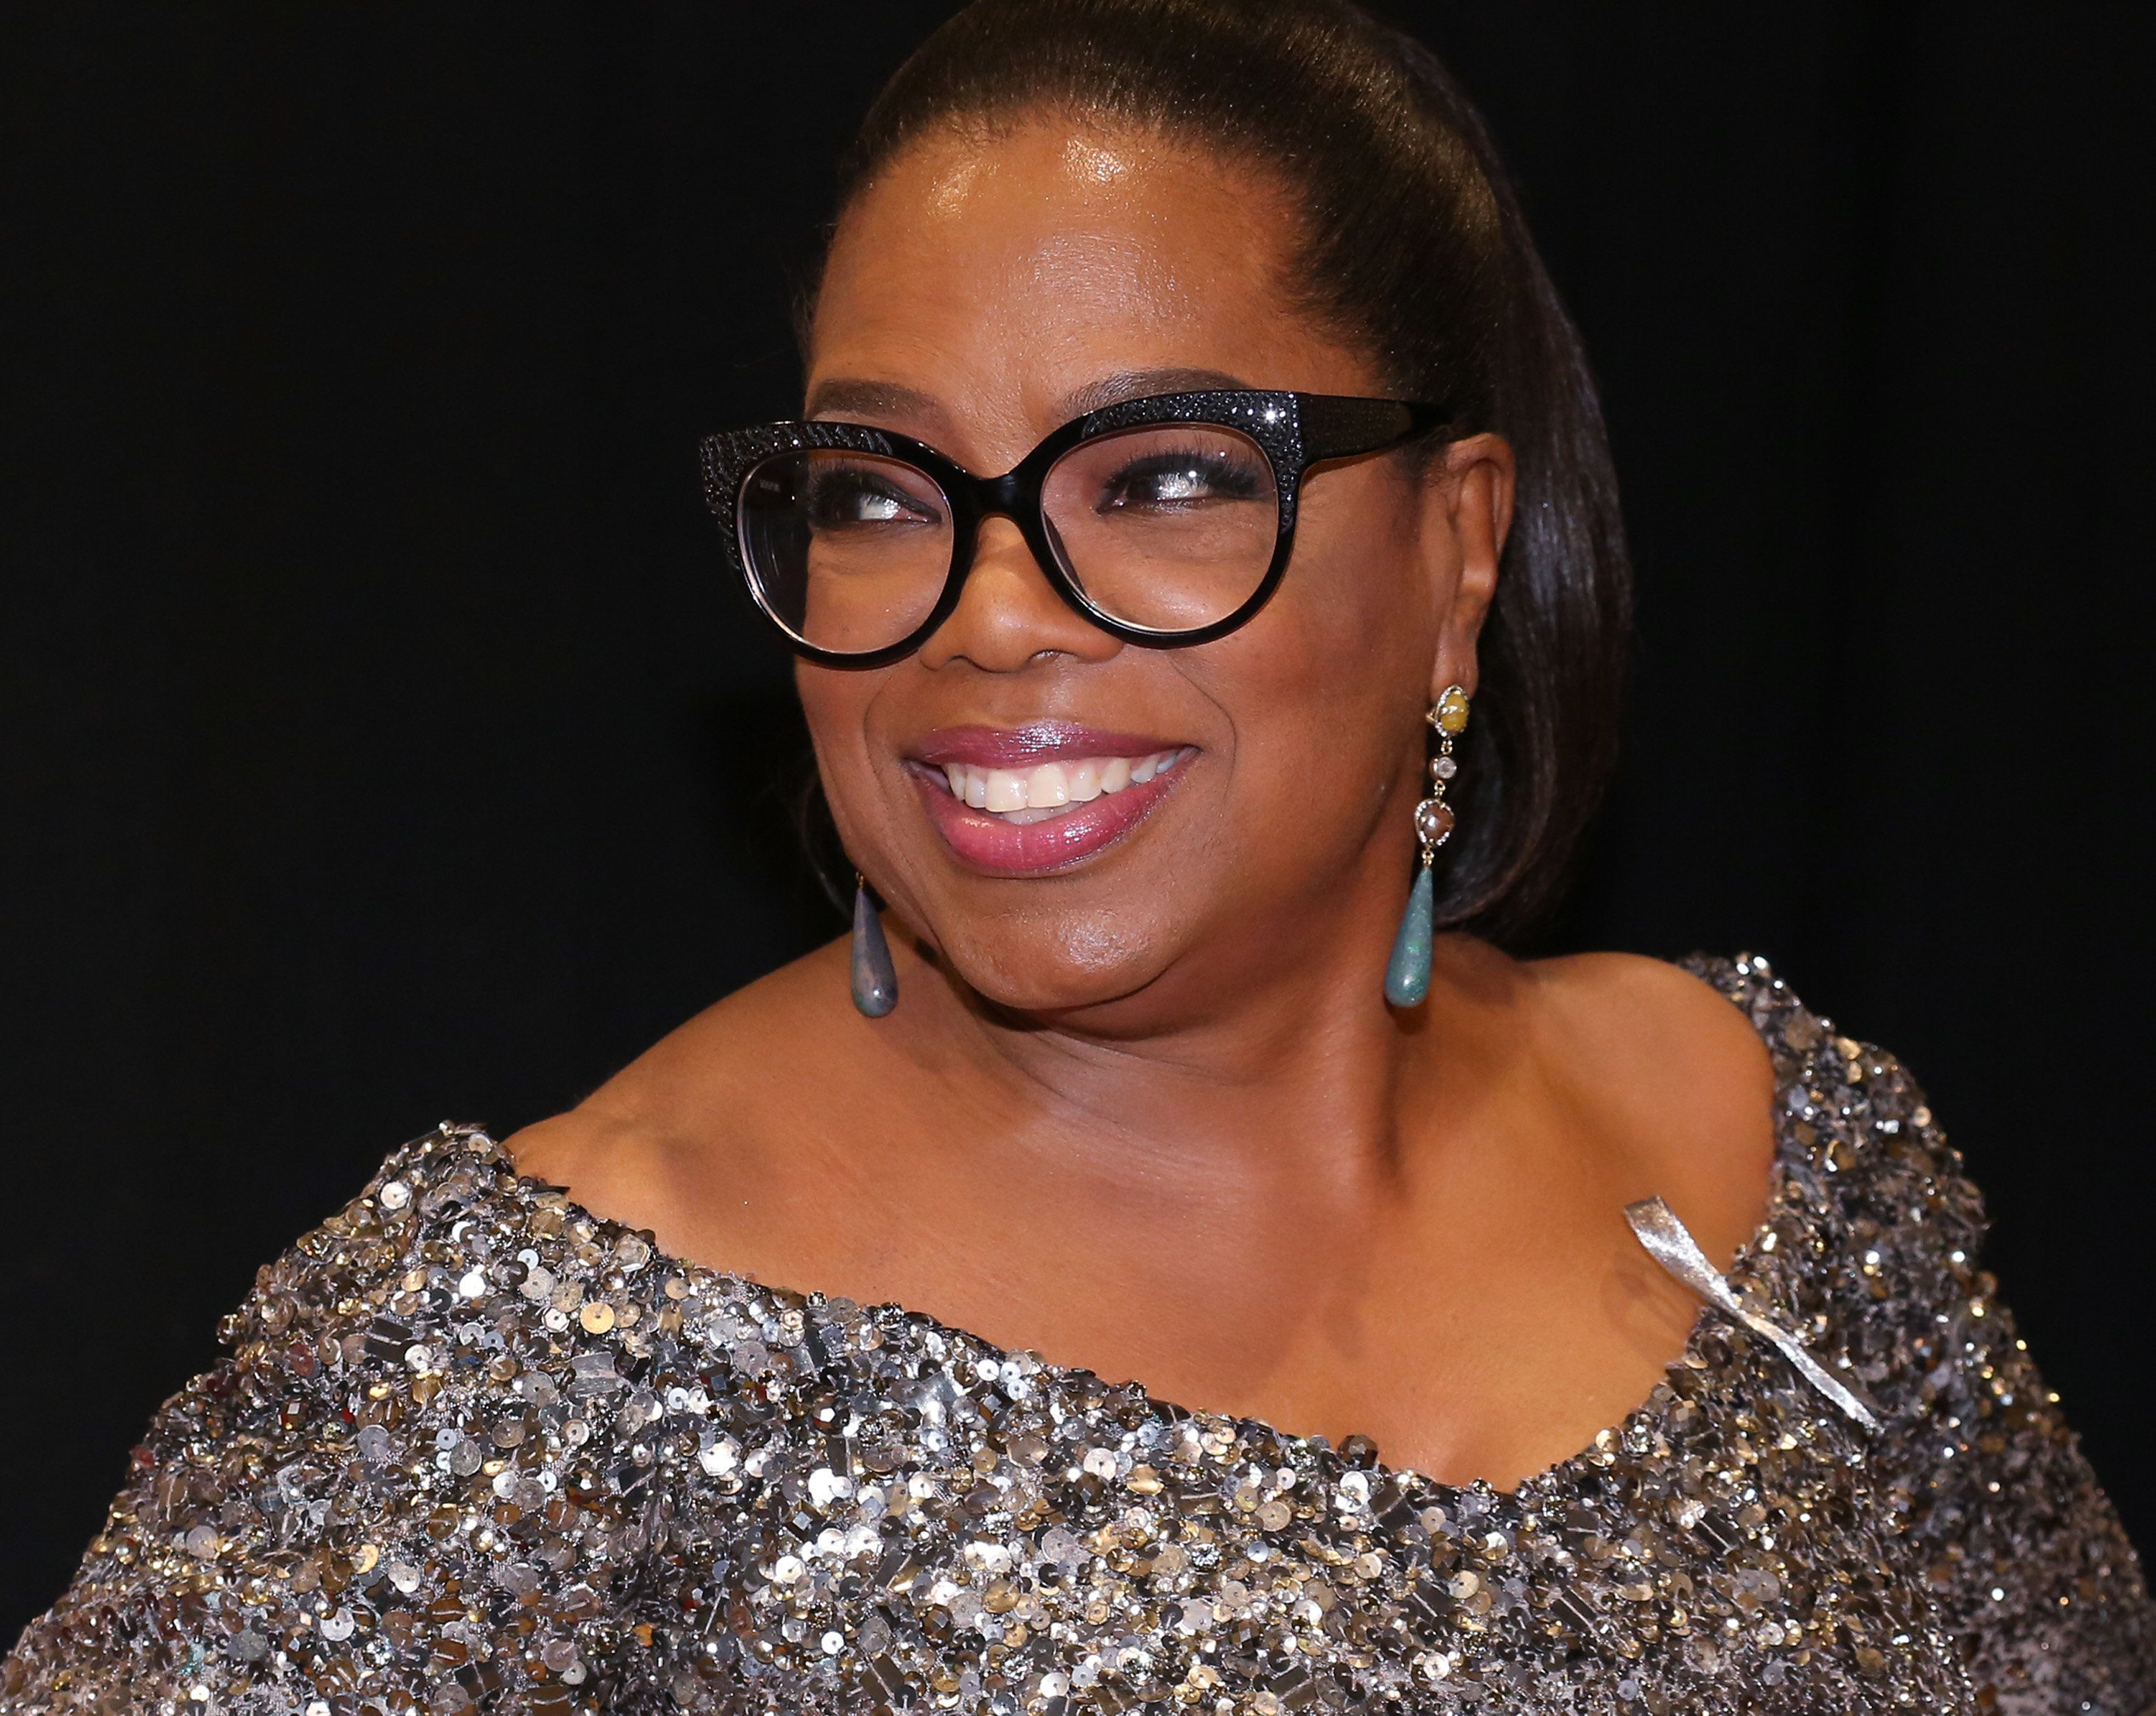 NEW YORK, NY - JUNE 12:  Oprah Winfrey in the press room for the 70th Annual Tony Awards at the Beacon Theater on June 12, 2016 in New York City.  (Photo by Walter McBride/WireImage)